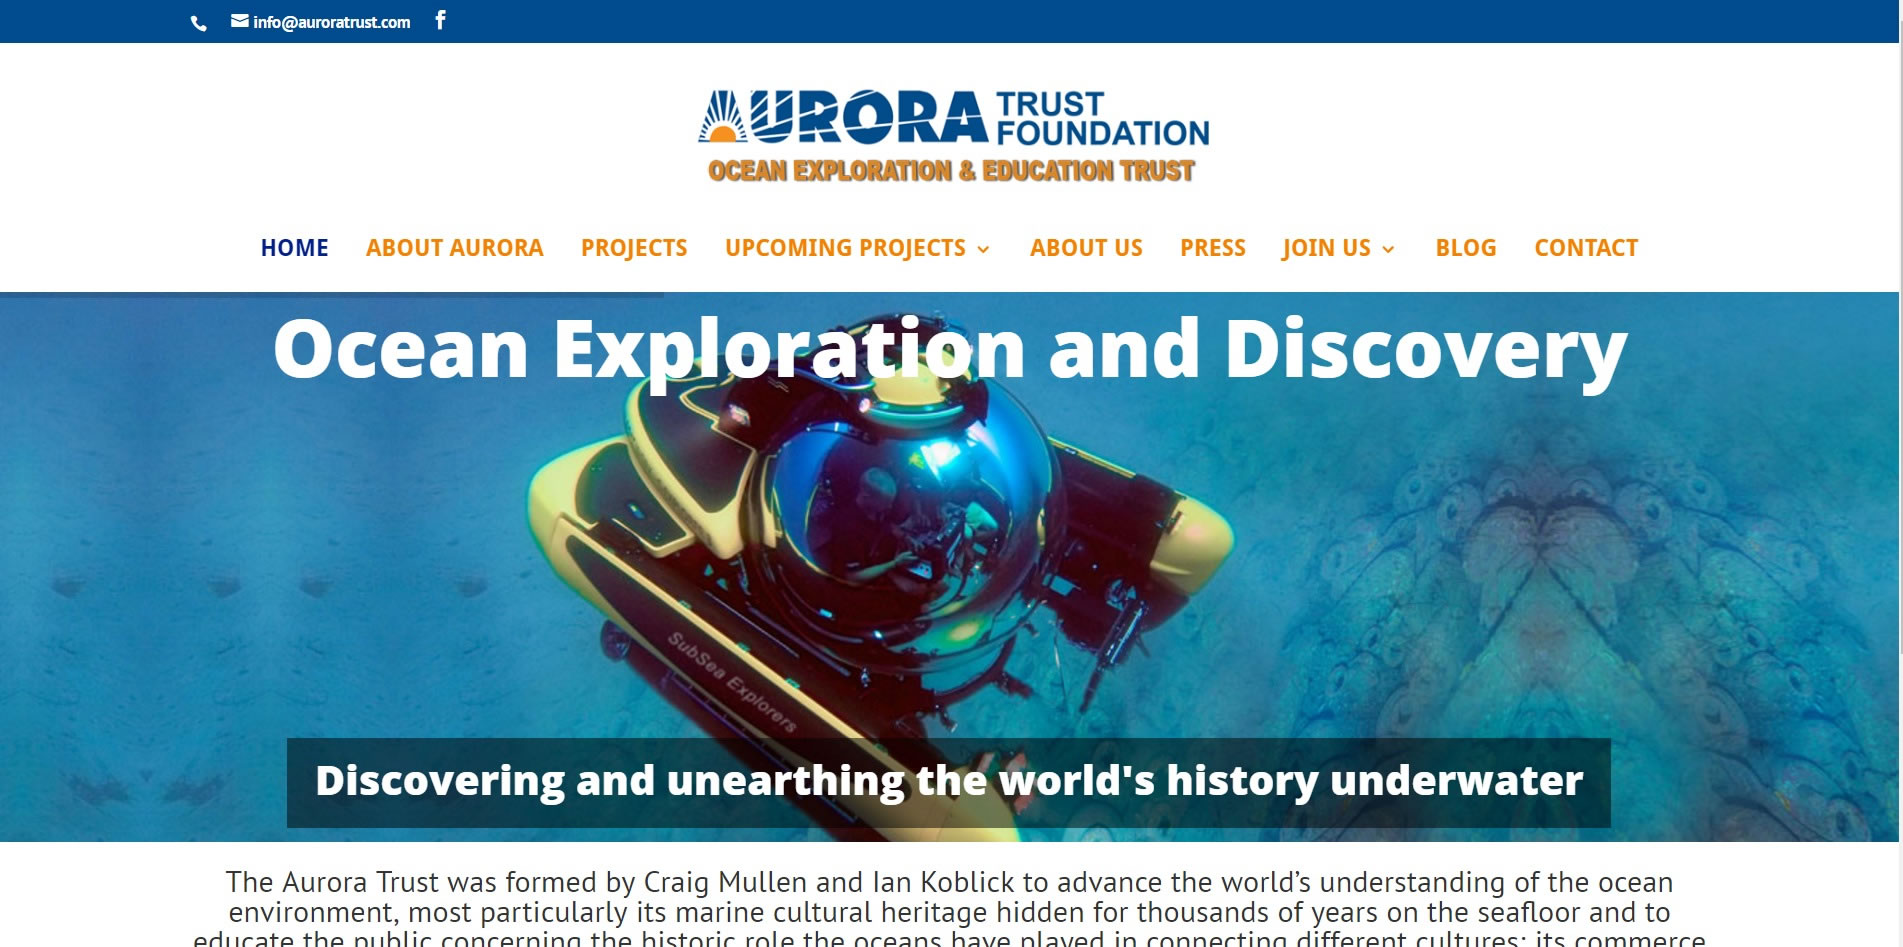 Aurora Trust Foundation Mediterranean Shipwrecks Ocean Exploration Education Trust